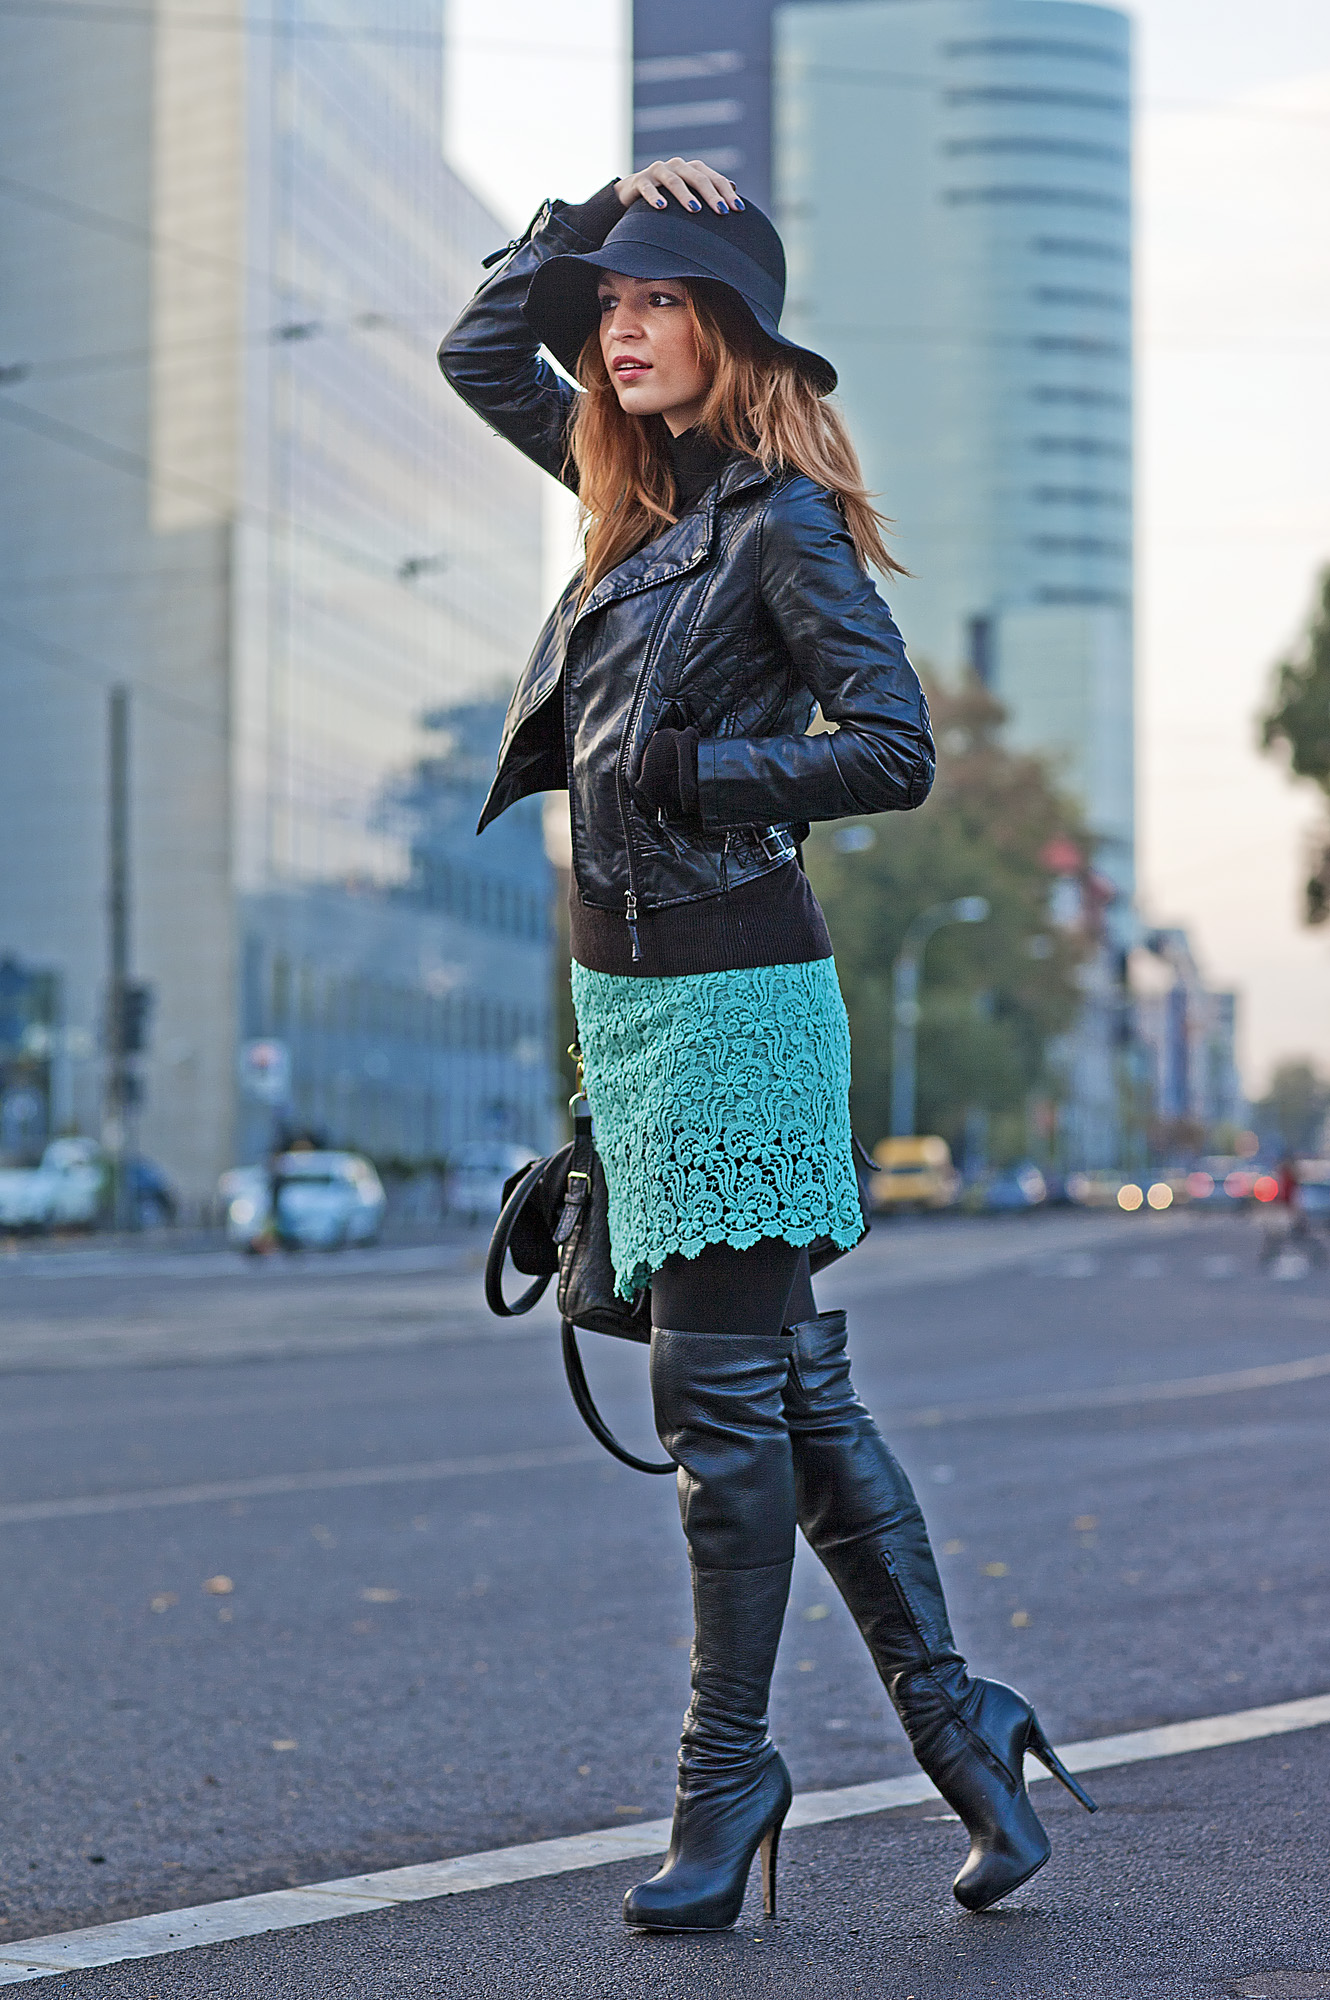 Street Fashion Bucharest